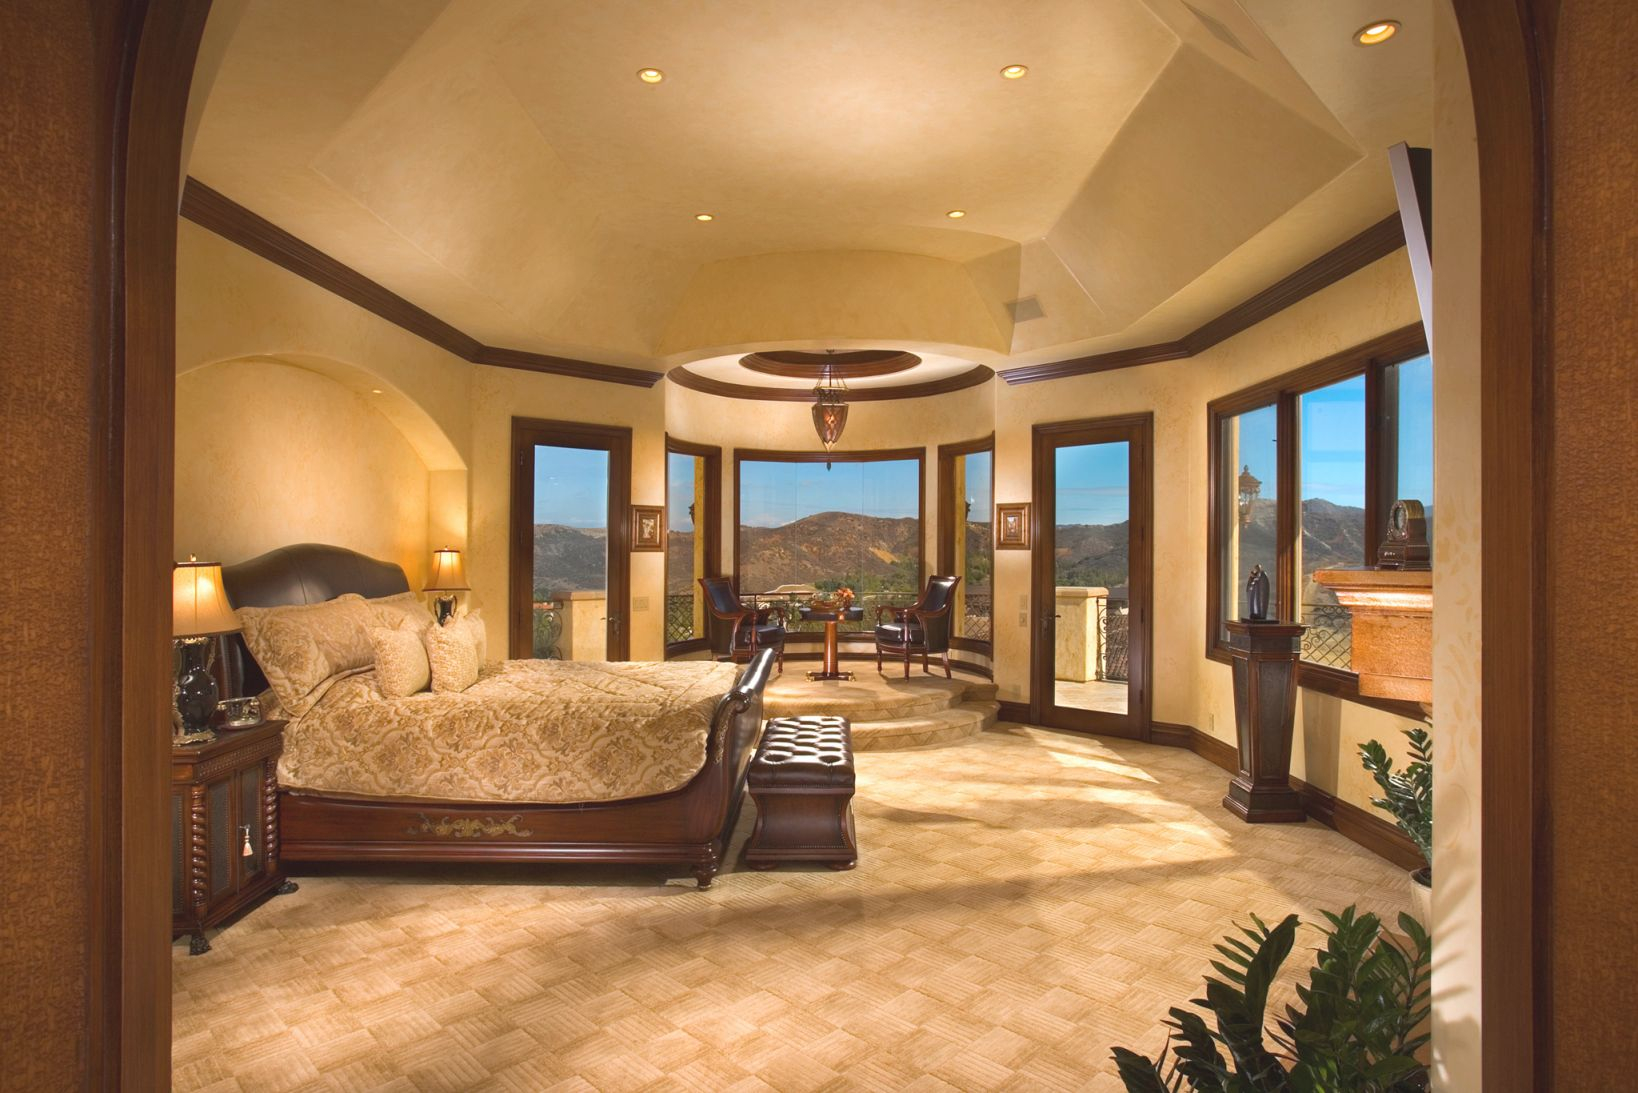 45 Master Bedroom Ideas For Your Home regarding Home Decor Ideas For Master Bedroom